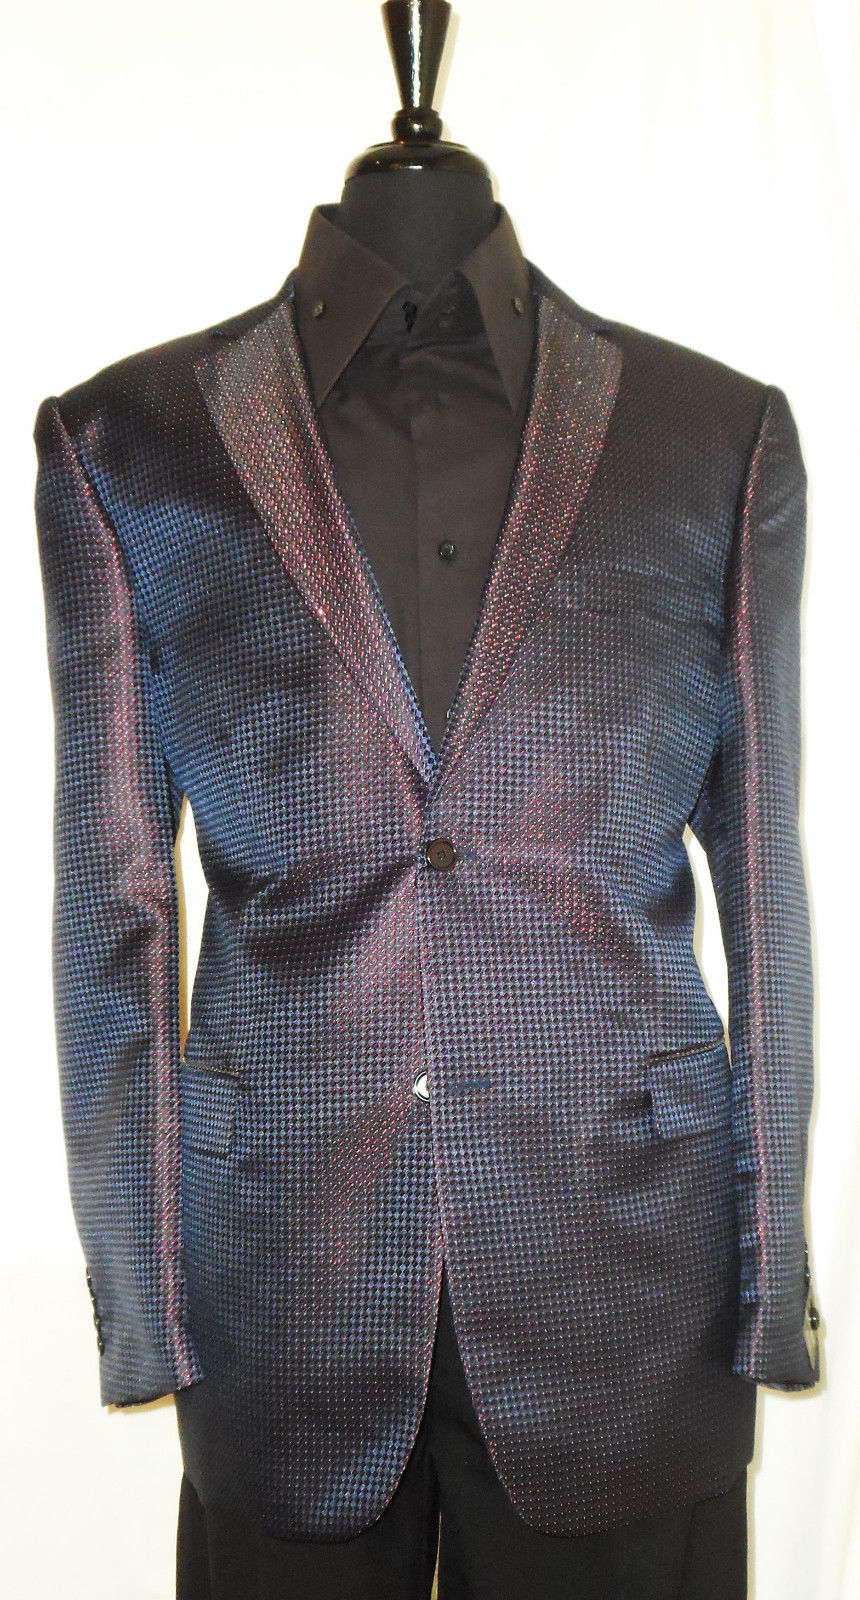 Mens Midnight Navy Iridescent Red Leonardi Modern Fit Fashion Jacket Style 906 - Nader Fashion Las Vegas